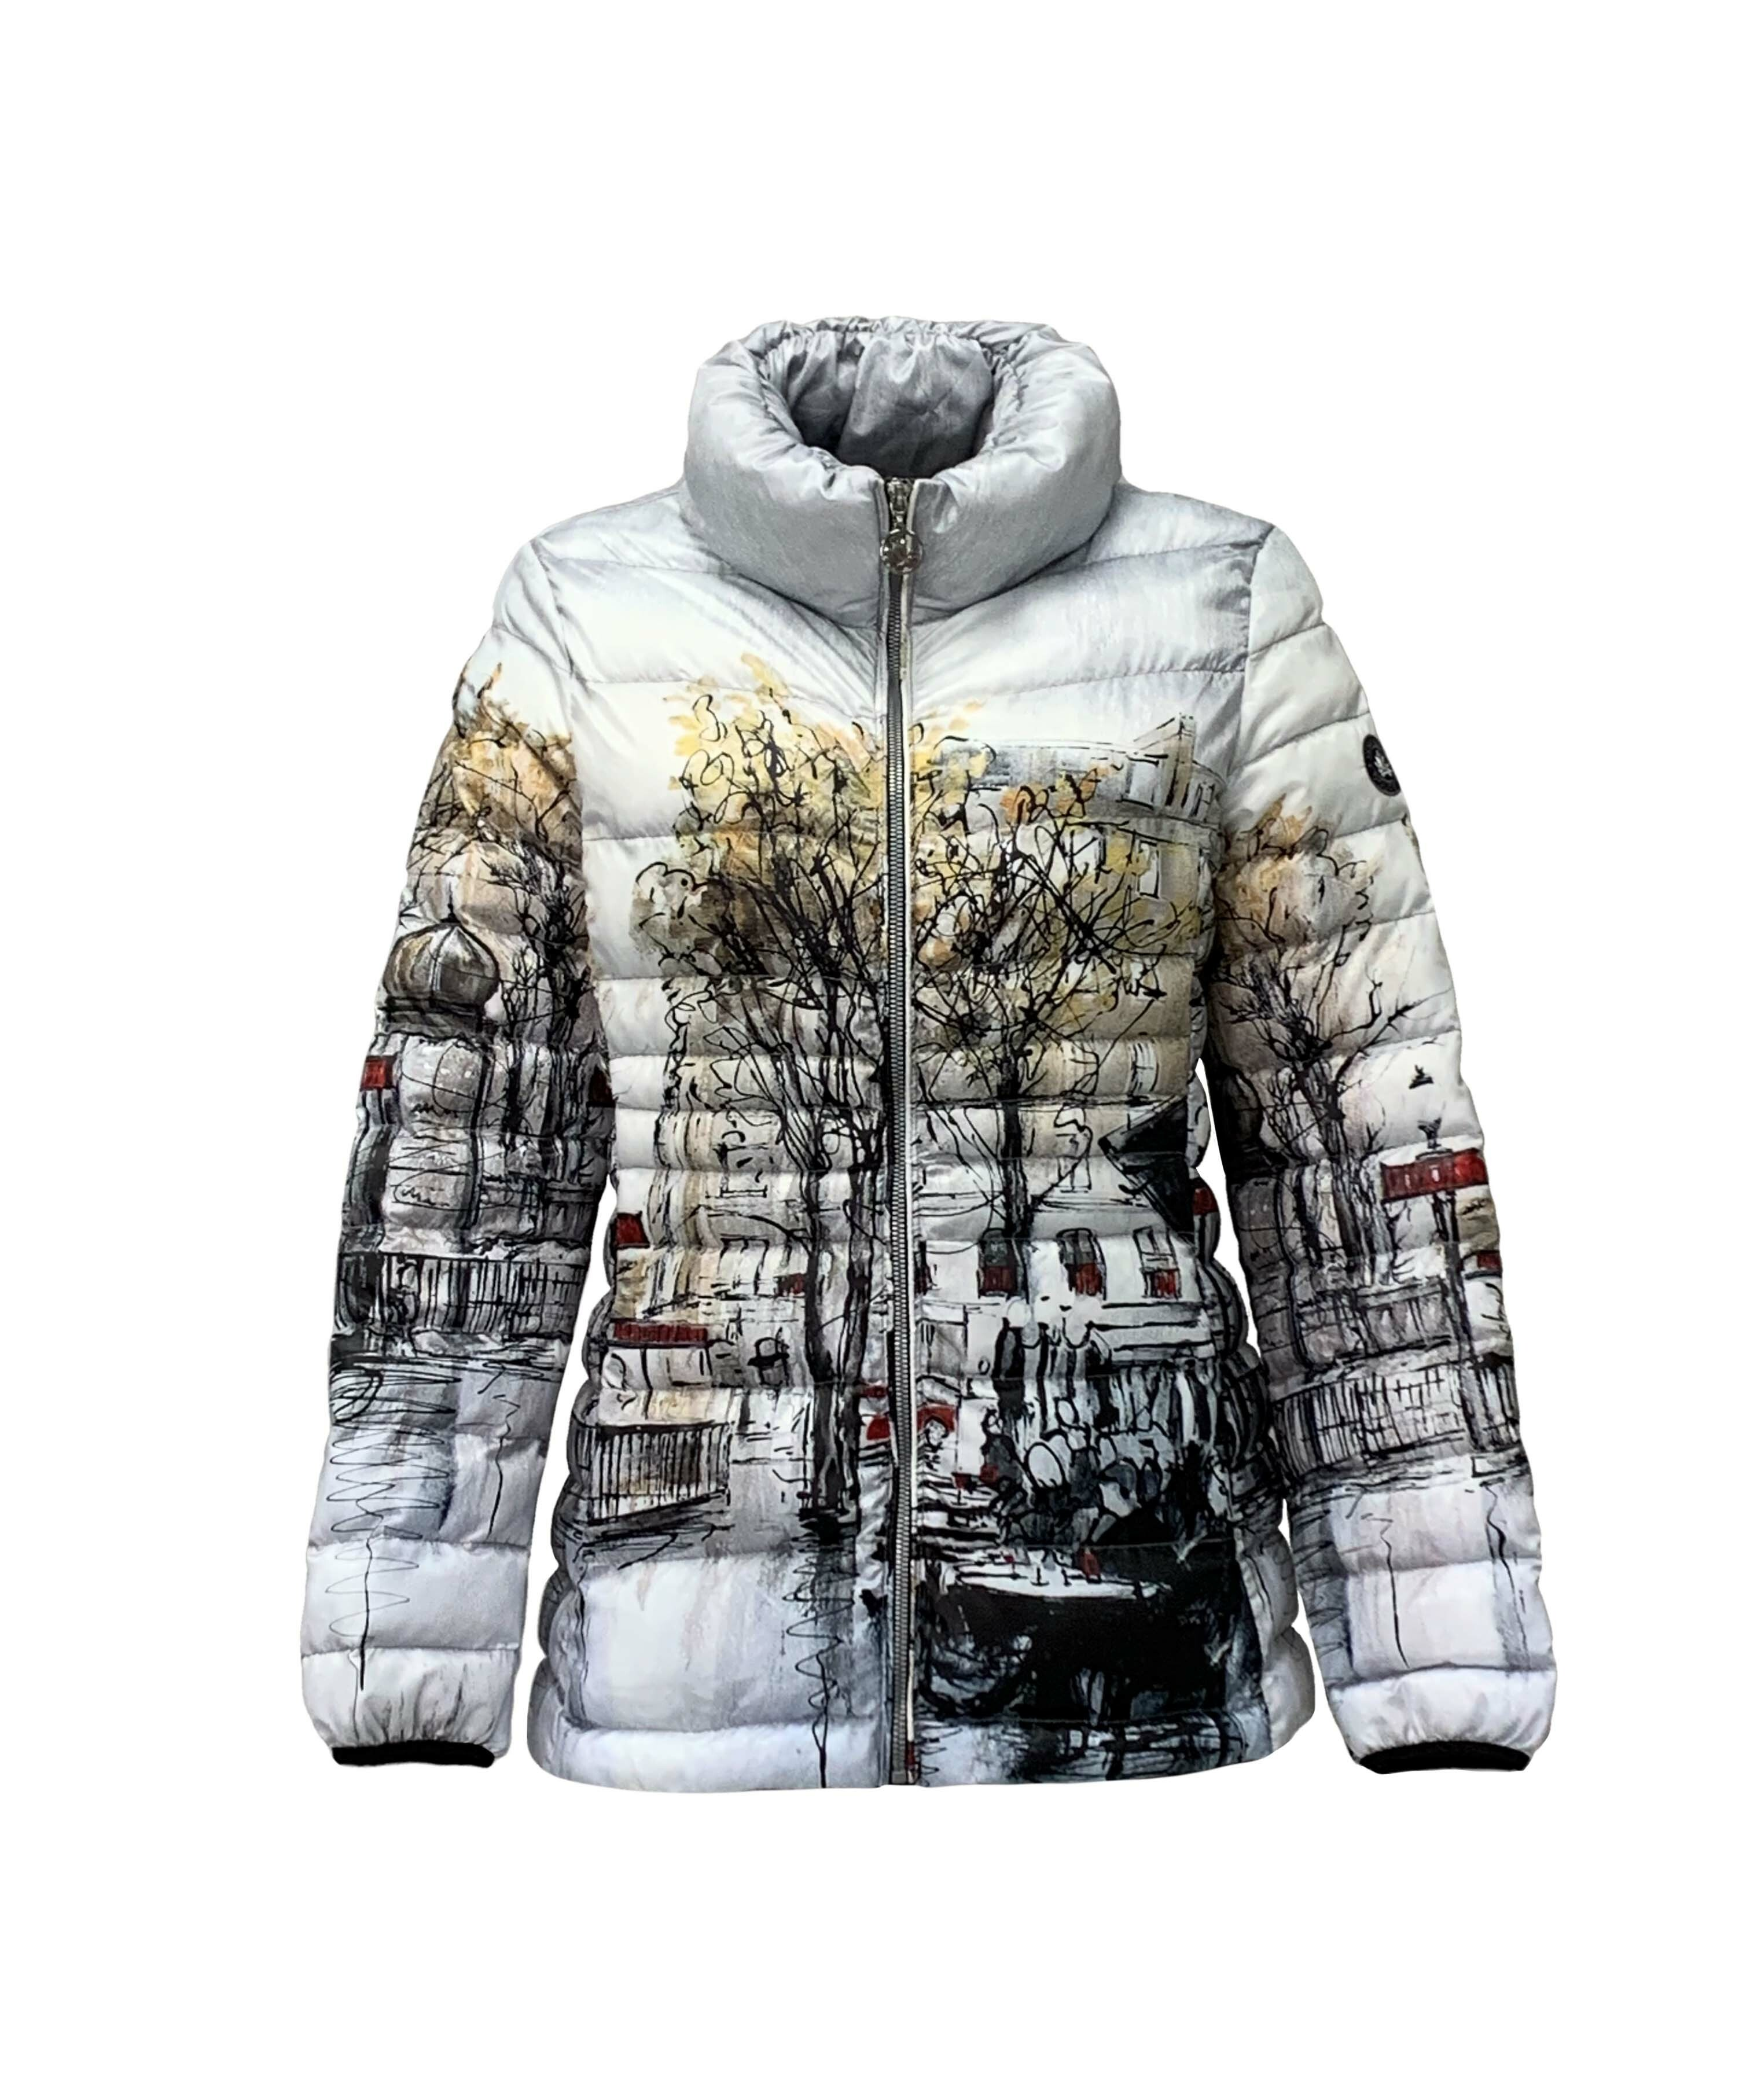 Simply Art Dolcezza: Parisian Life Abstract Art Puffer Jacket SOLD OUT